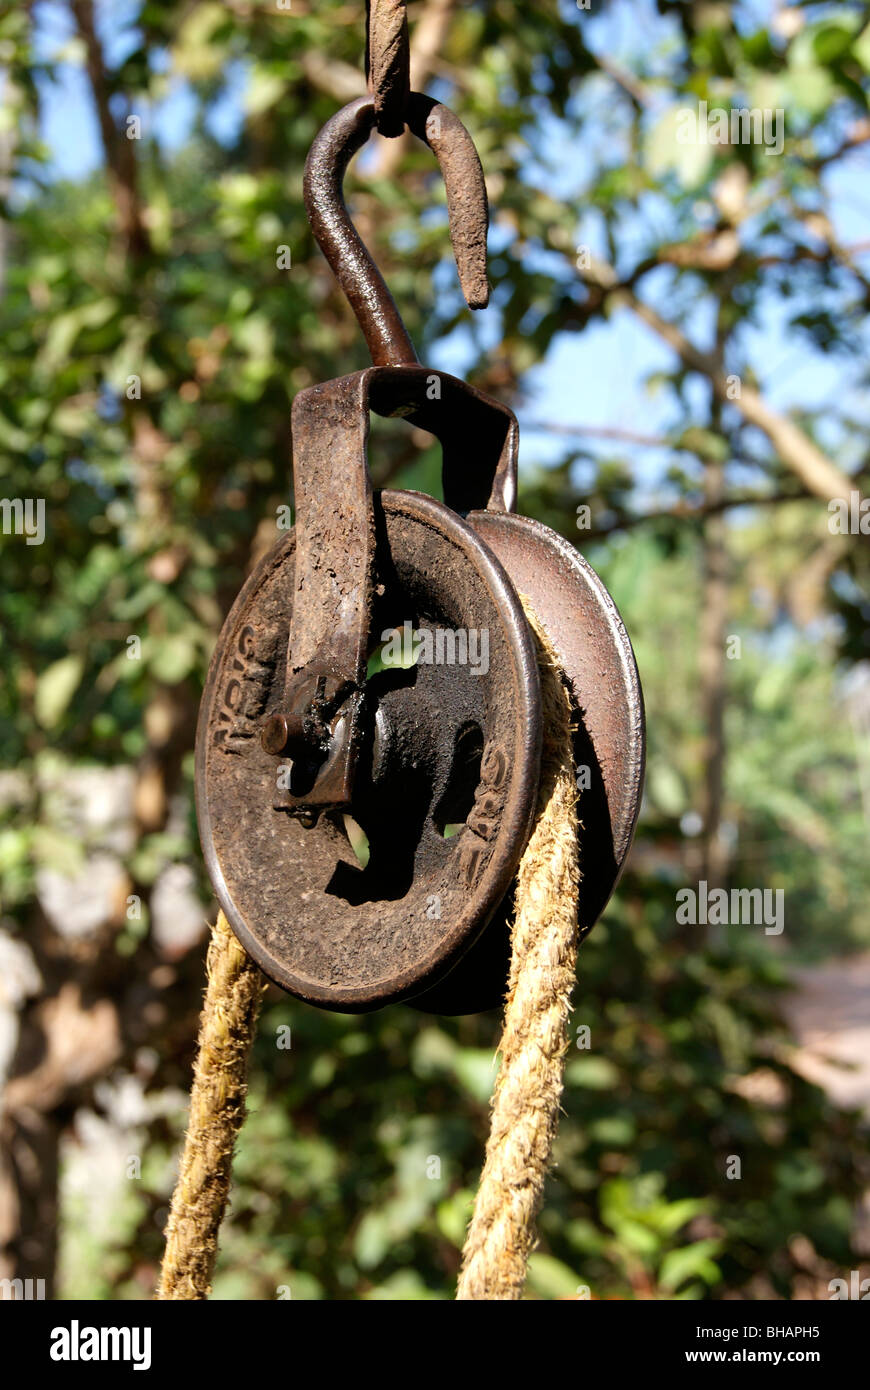 Rope And Pulley Mechanism : Rope and pulley mechanism for dragging water from well